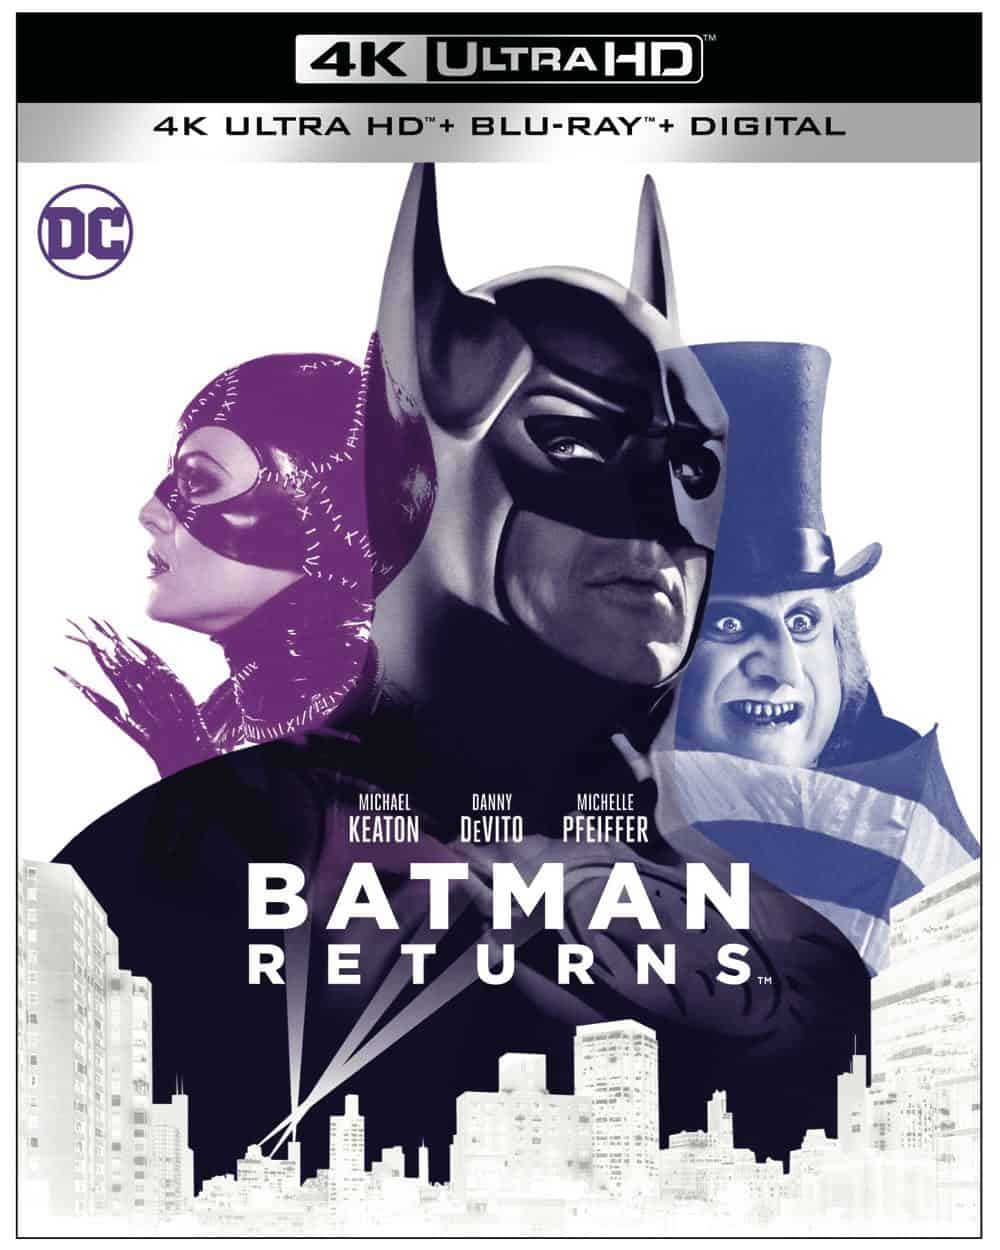 DCBATMAN RETURNS 1000735743 4K OSLV 2D FINAL Dom SKEW